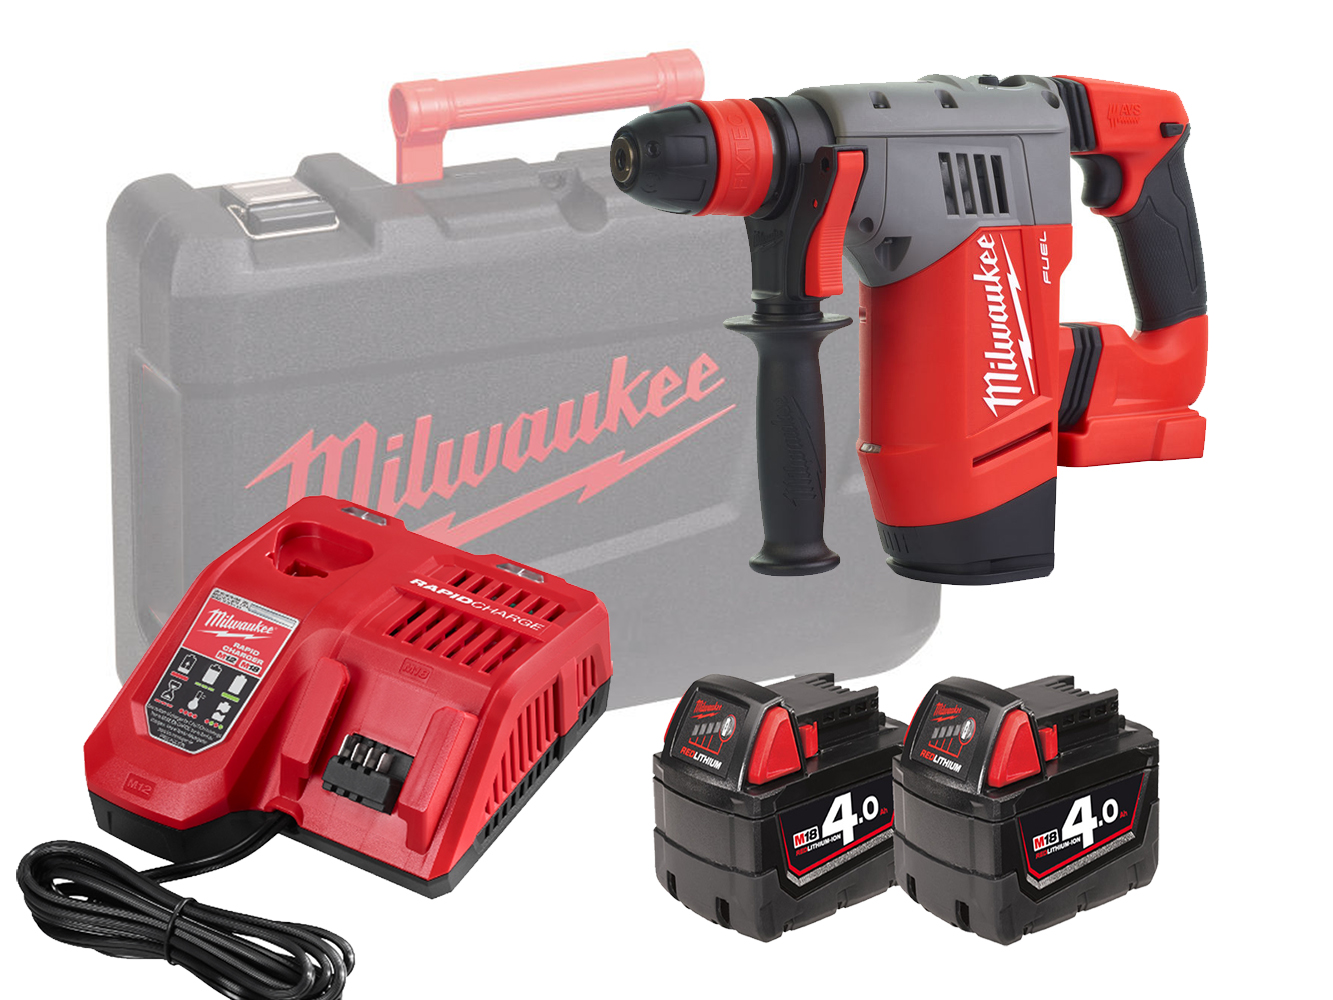 MILWAUKEE 18V FUEL HIGH PERFORMANCE SDS+ HAMMER - M18CHPX - 4.0AH PACK